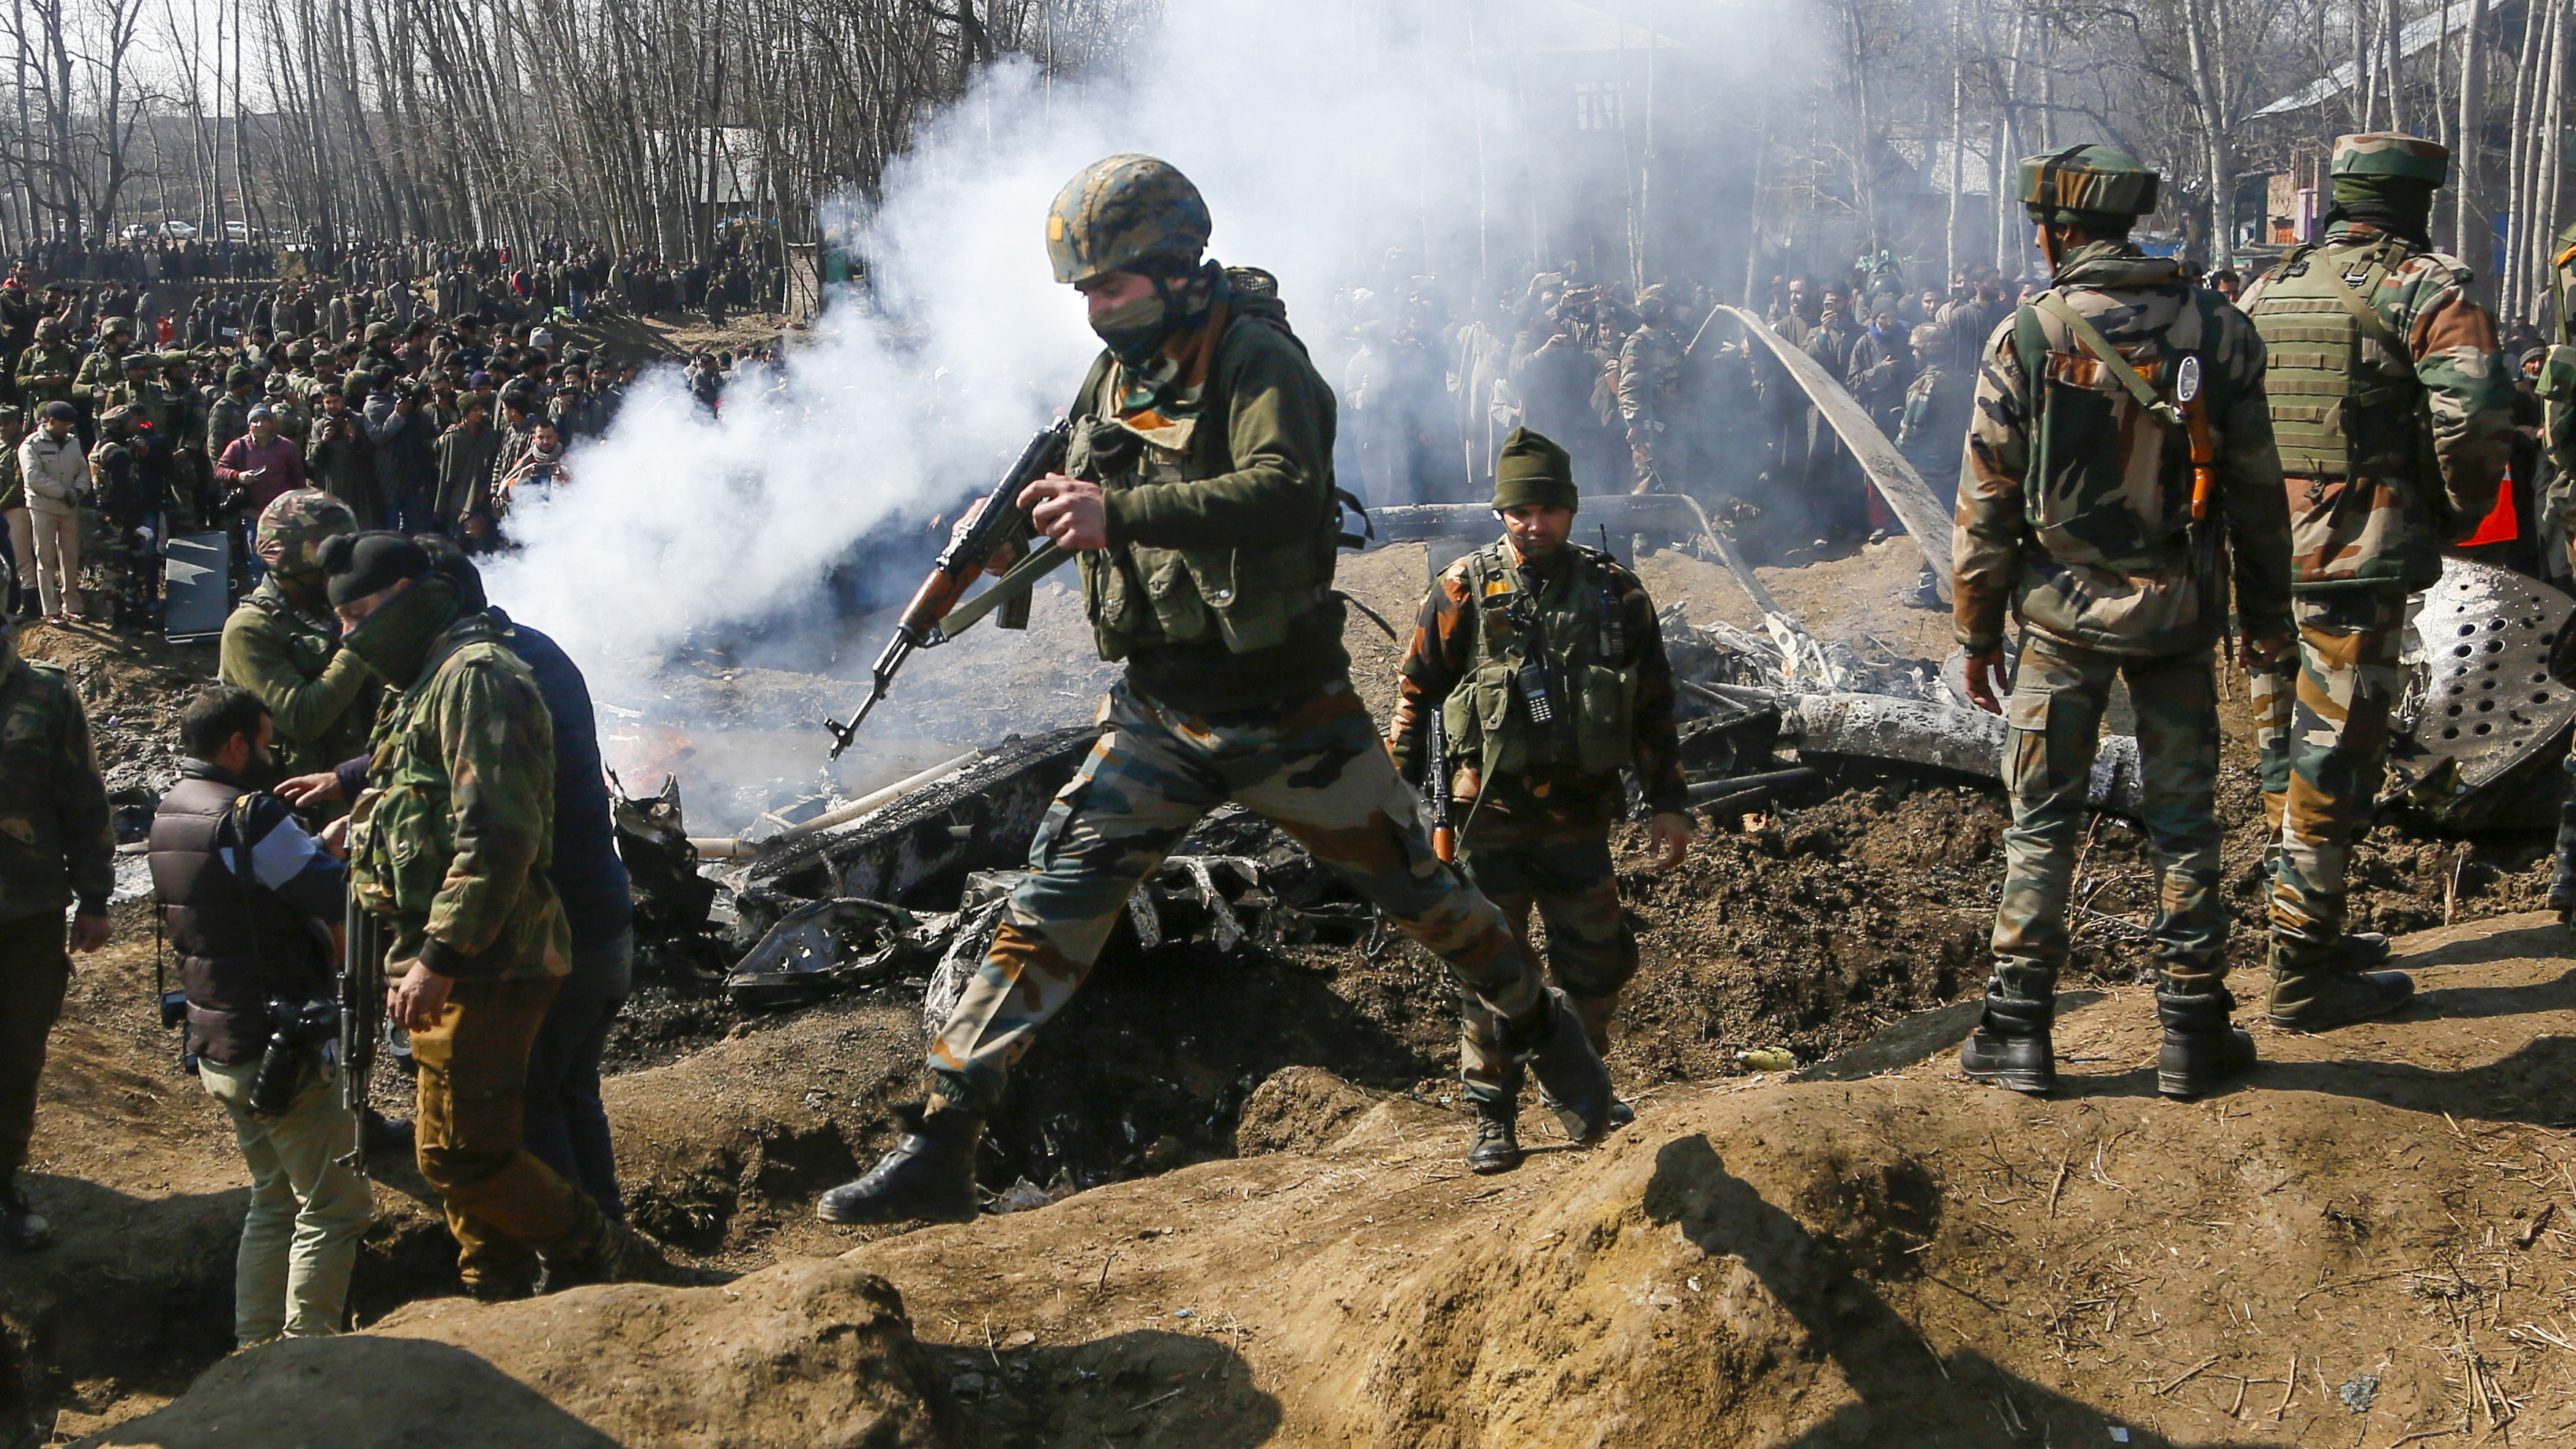 In this Wednesday, Feb.27, 2019 file photo, Indian army soldiers arrive at the wreckage of an Indian helicopter after it crashed killing several in the Budgam area, on the outskirts of Srinagar, Indian controlled Kashmir. This week's standoff between India and Pakistan is their latest in a long dispute over the divided Himalayan region of Kashmir, dating back to their independence in 1947. (AP Photo/Mukhtar Khan)